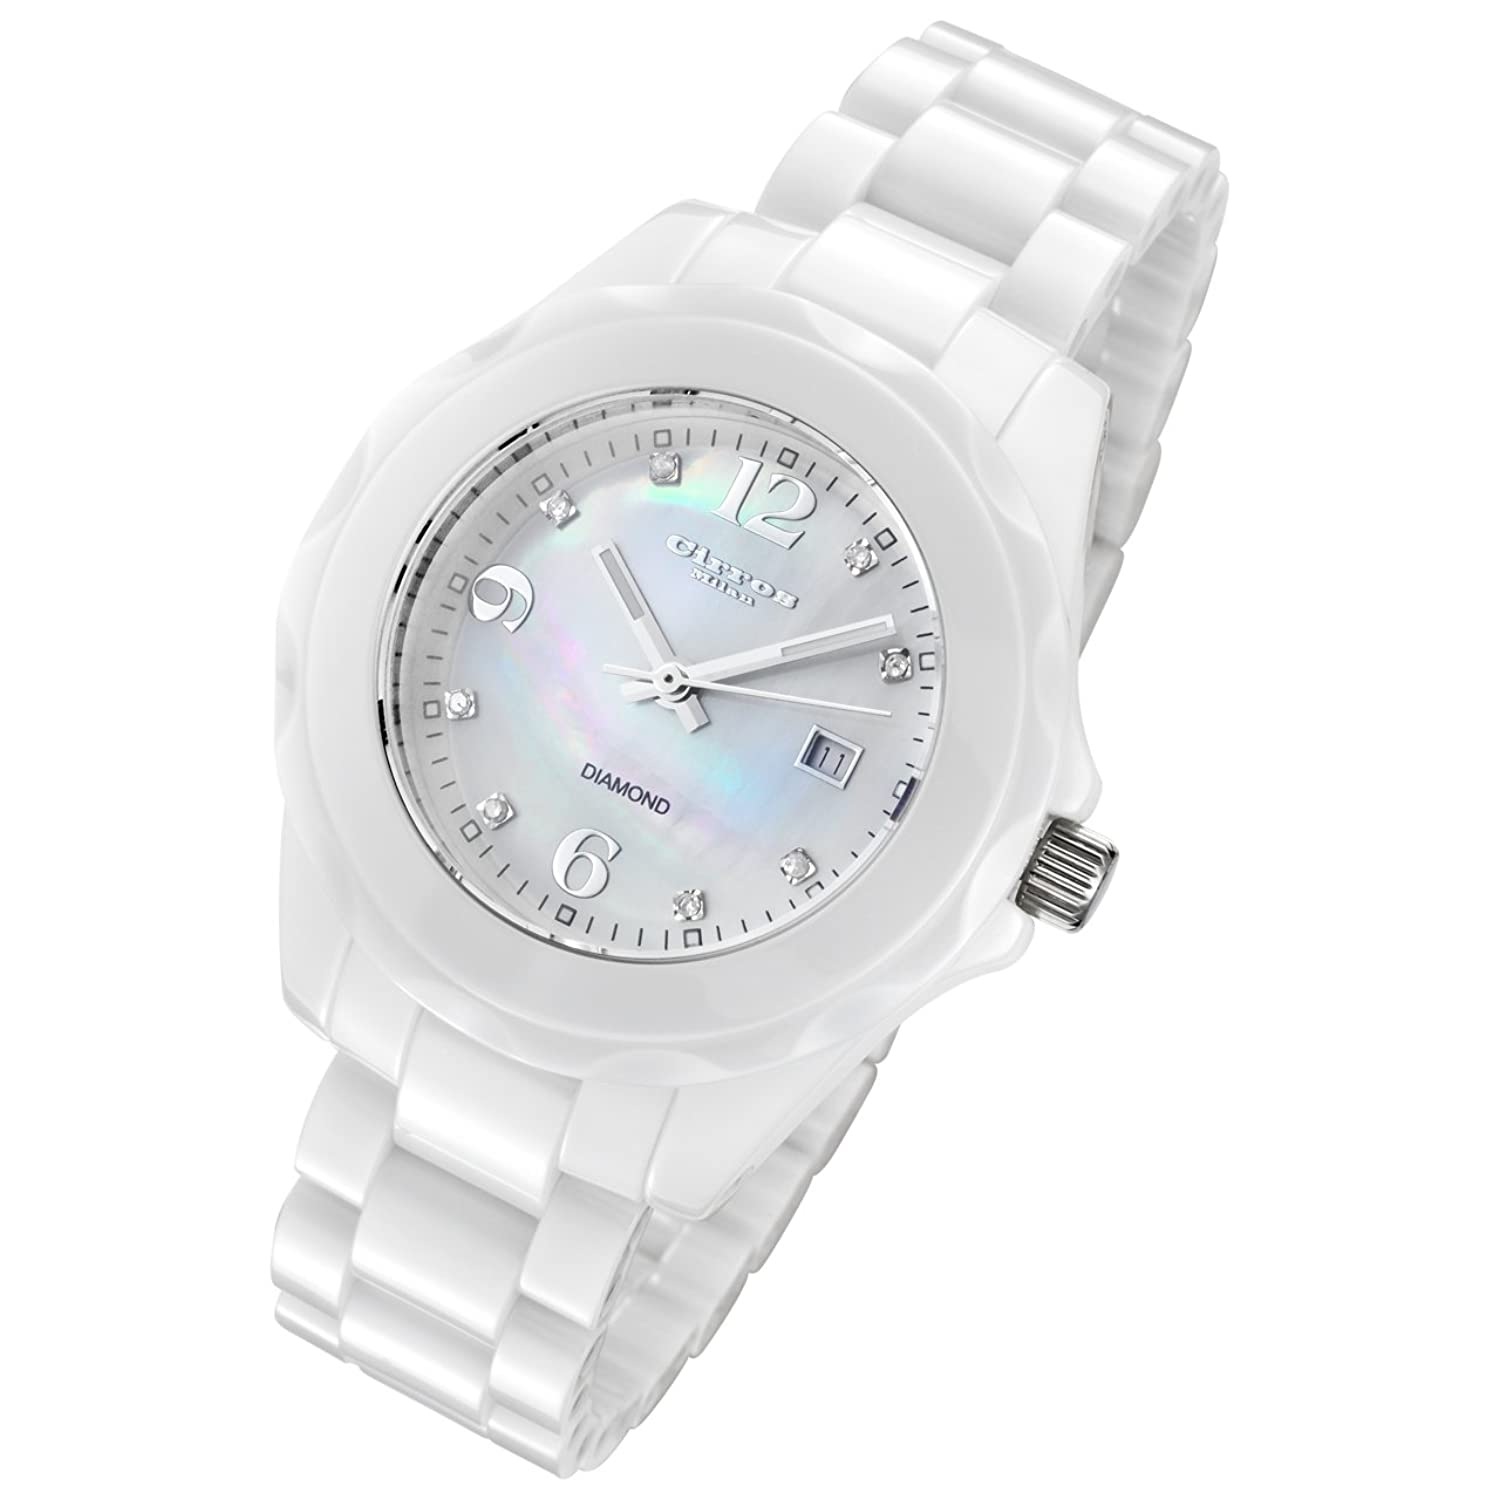 smartwatch fc watches finder frederique watch constant lady ladies white horological